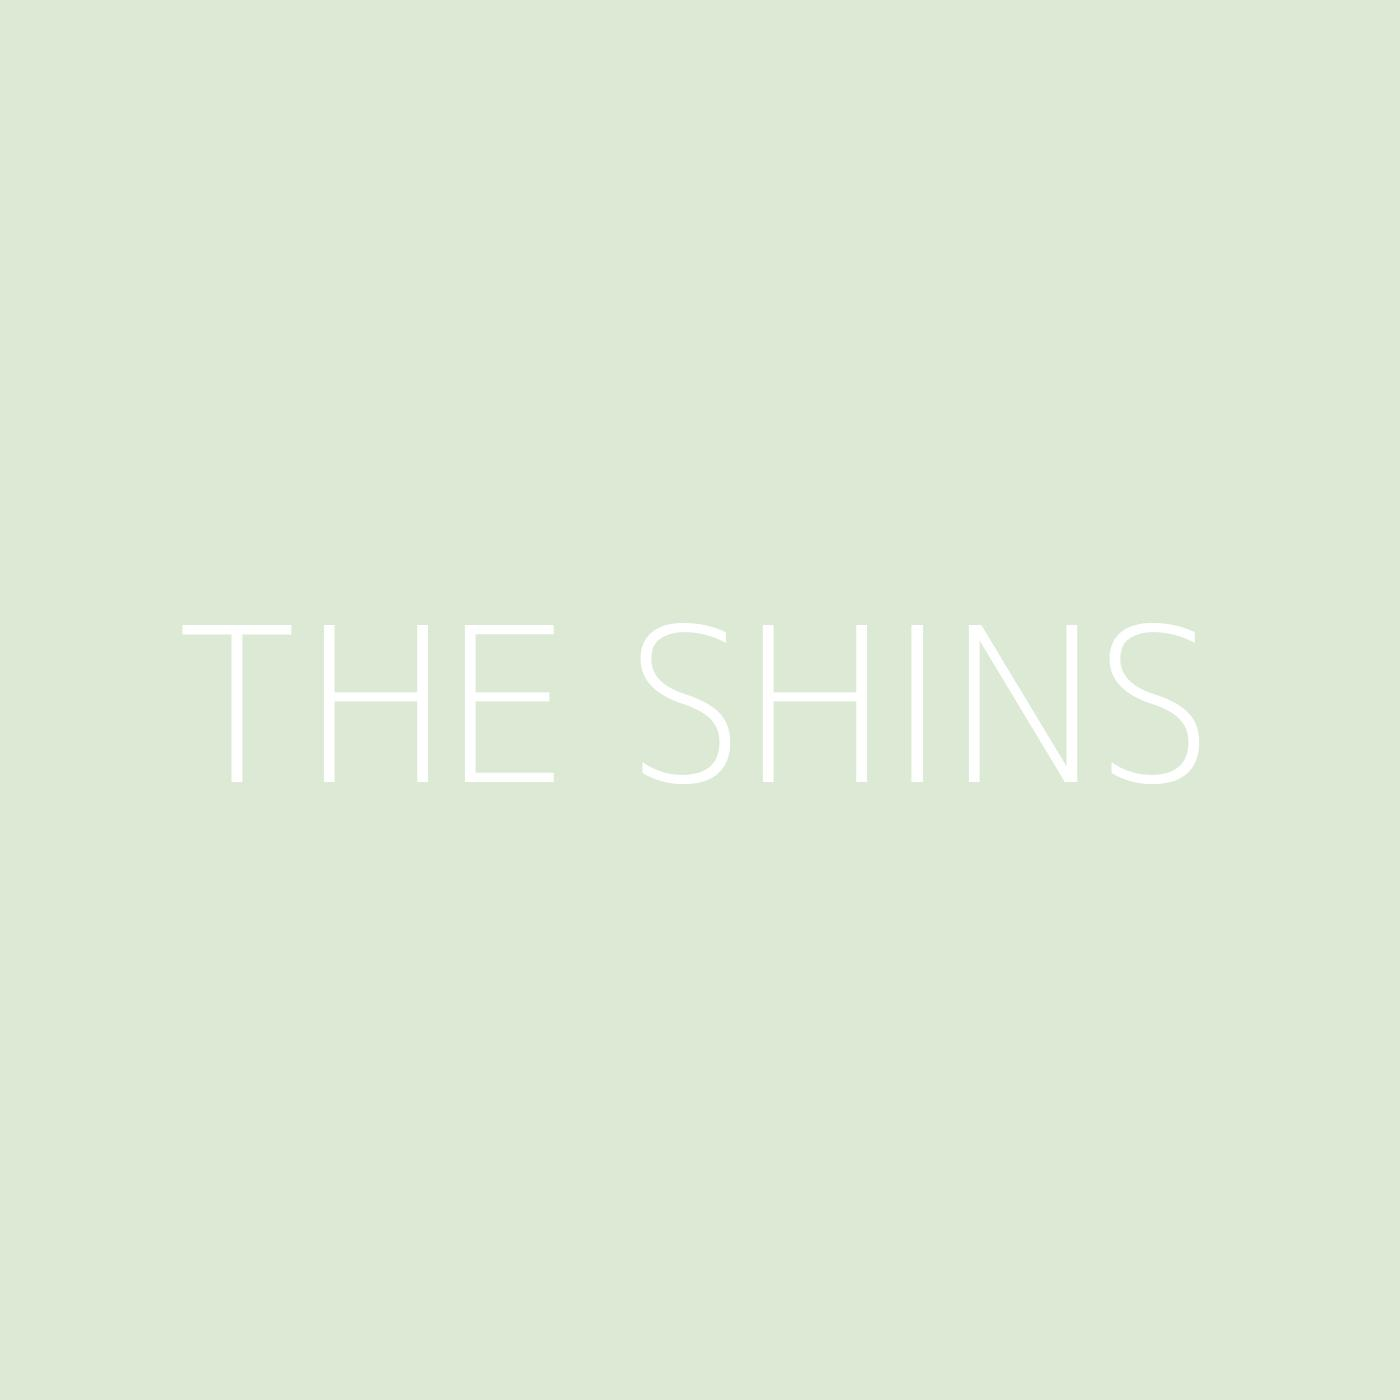 The Shins Playlist Artwork